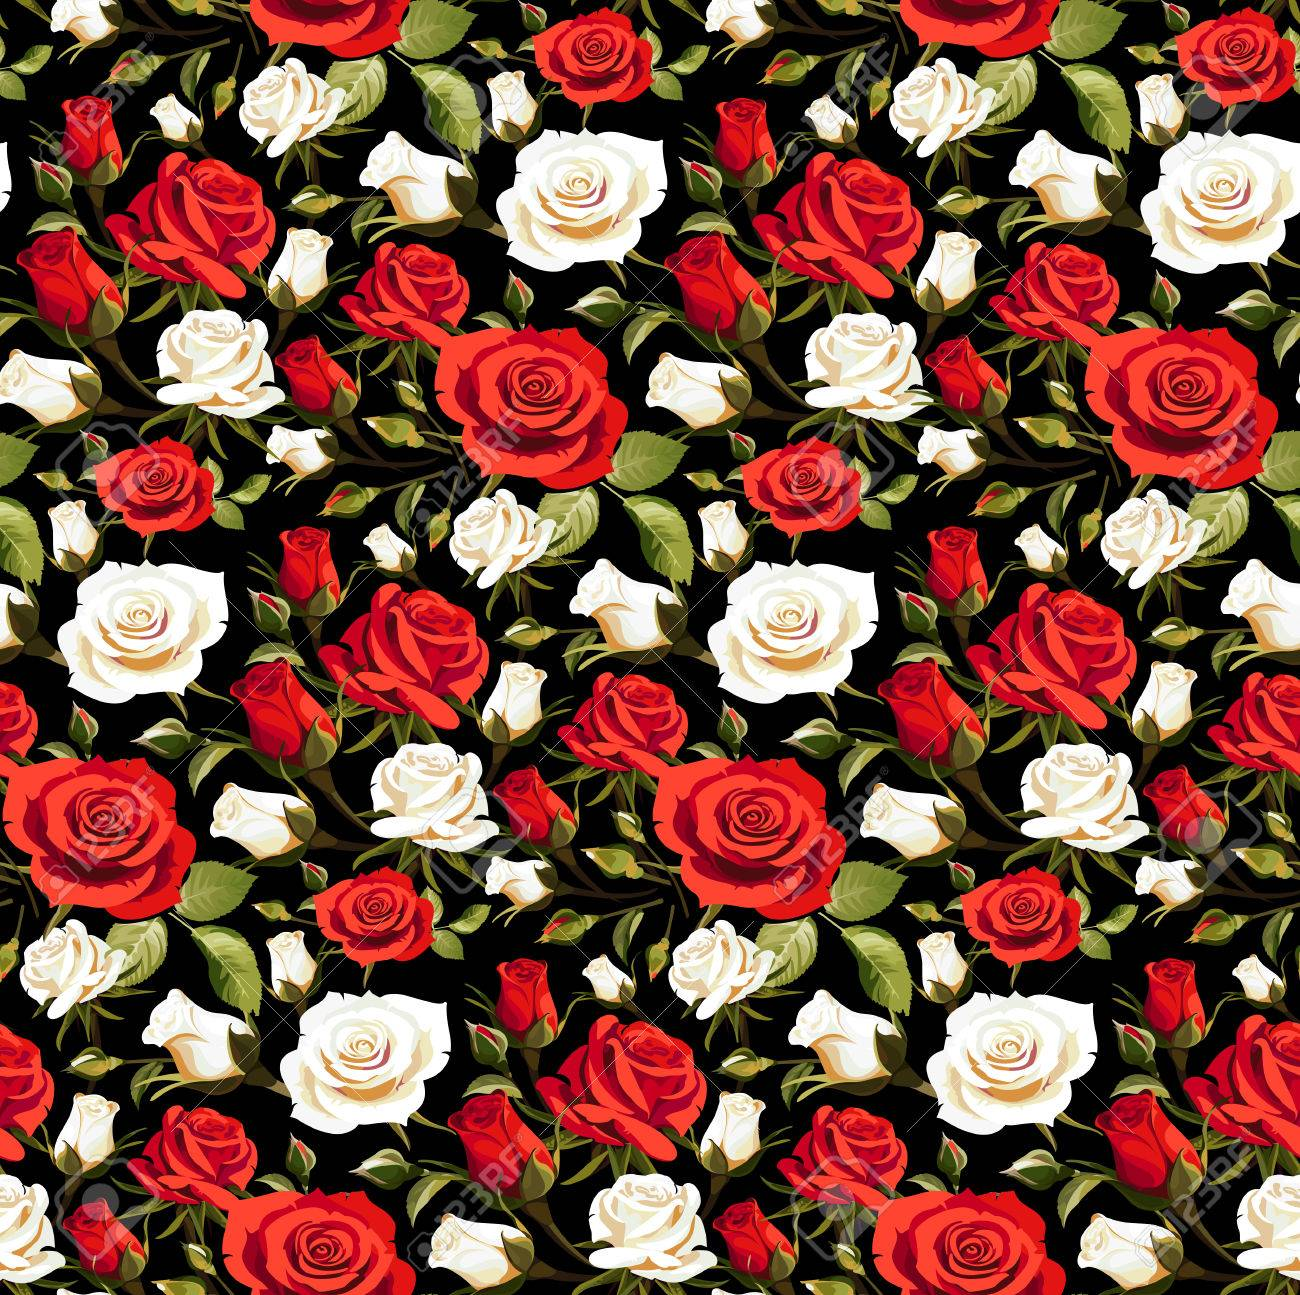 Seamless Floral Pattern With Red And White Roses On A Black